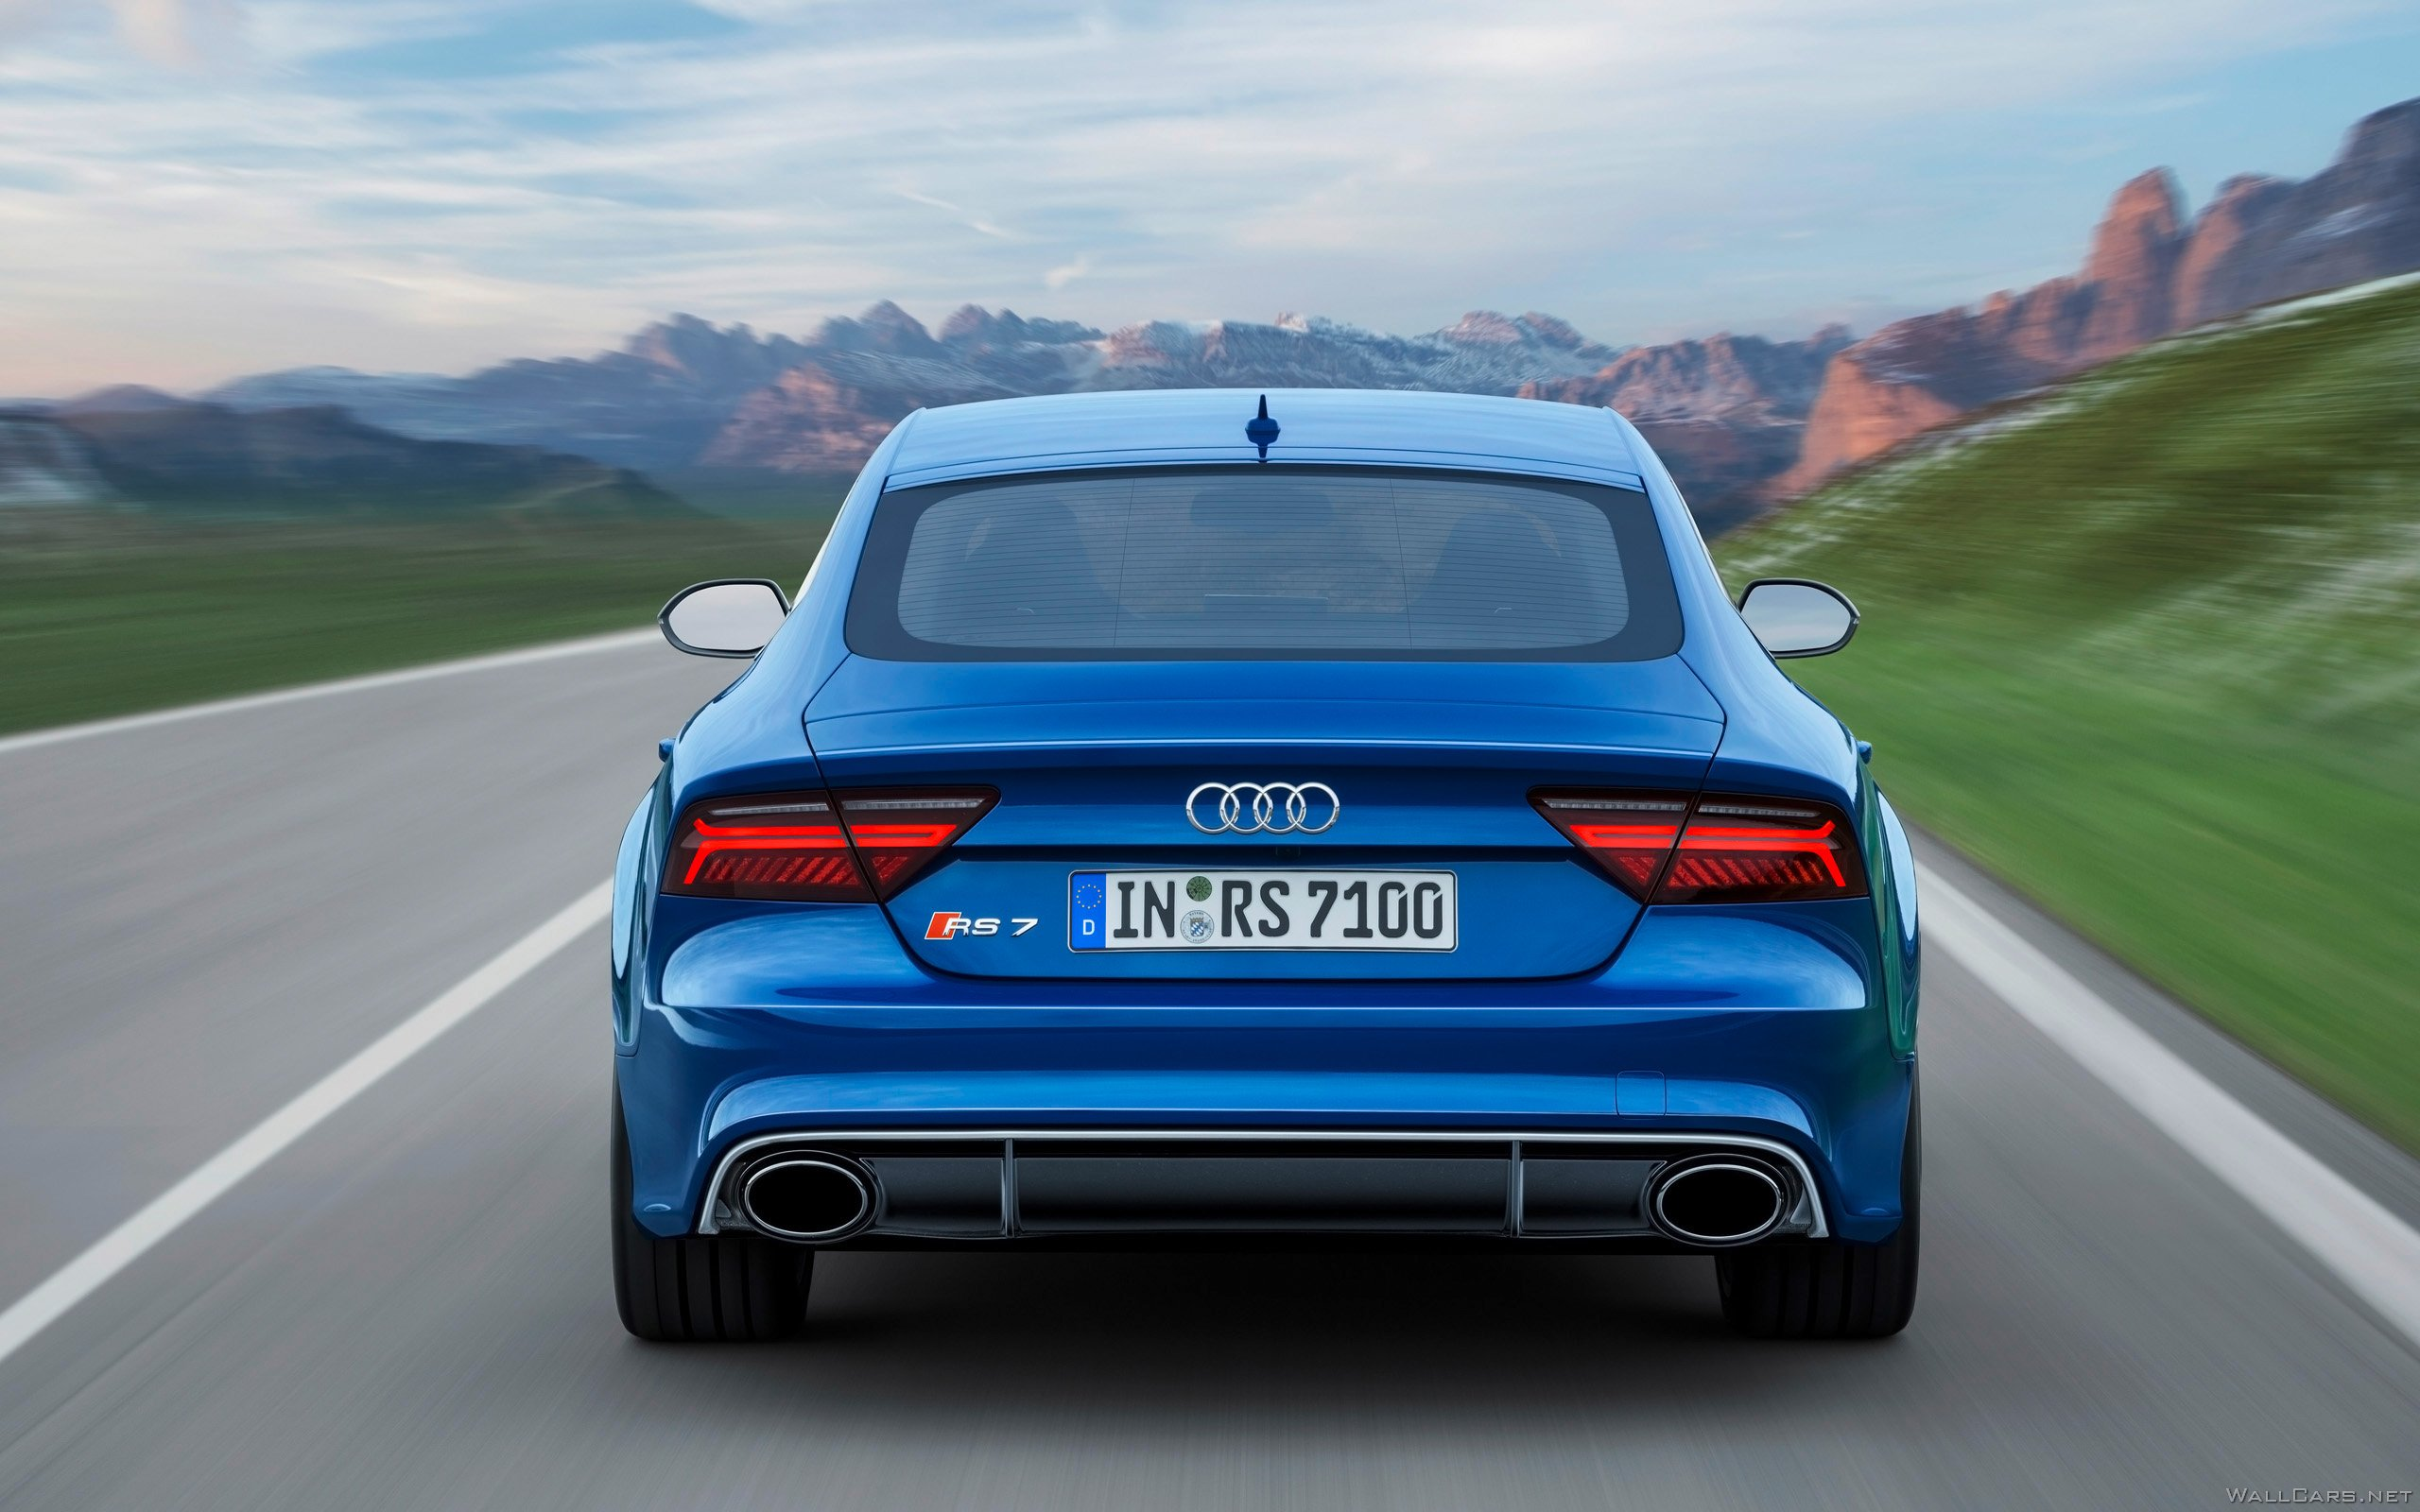 Rear lights of Audi RS7 Sportback Performance, 2015, back, style, new, third view, mountains, sky